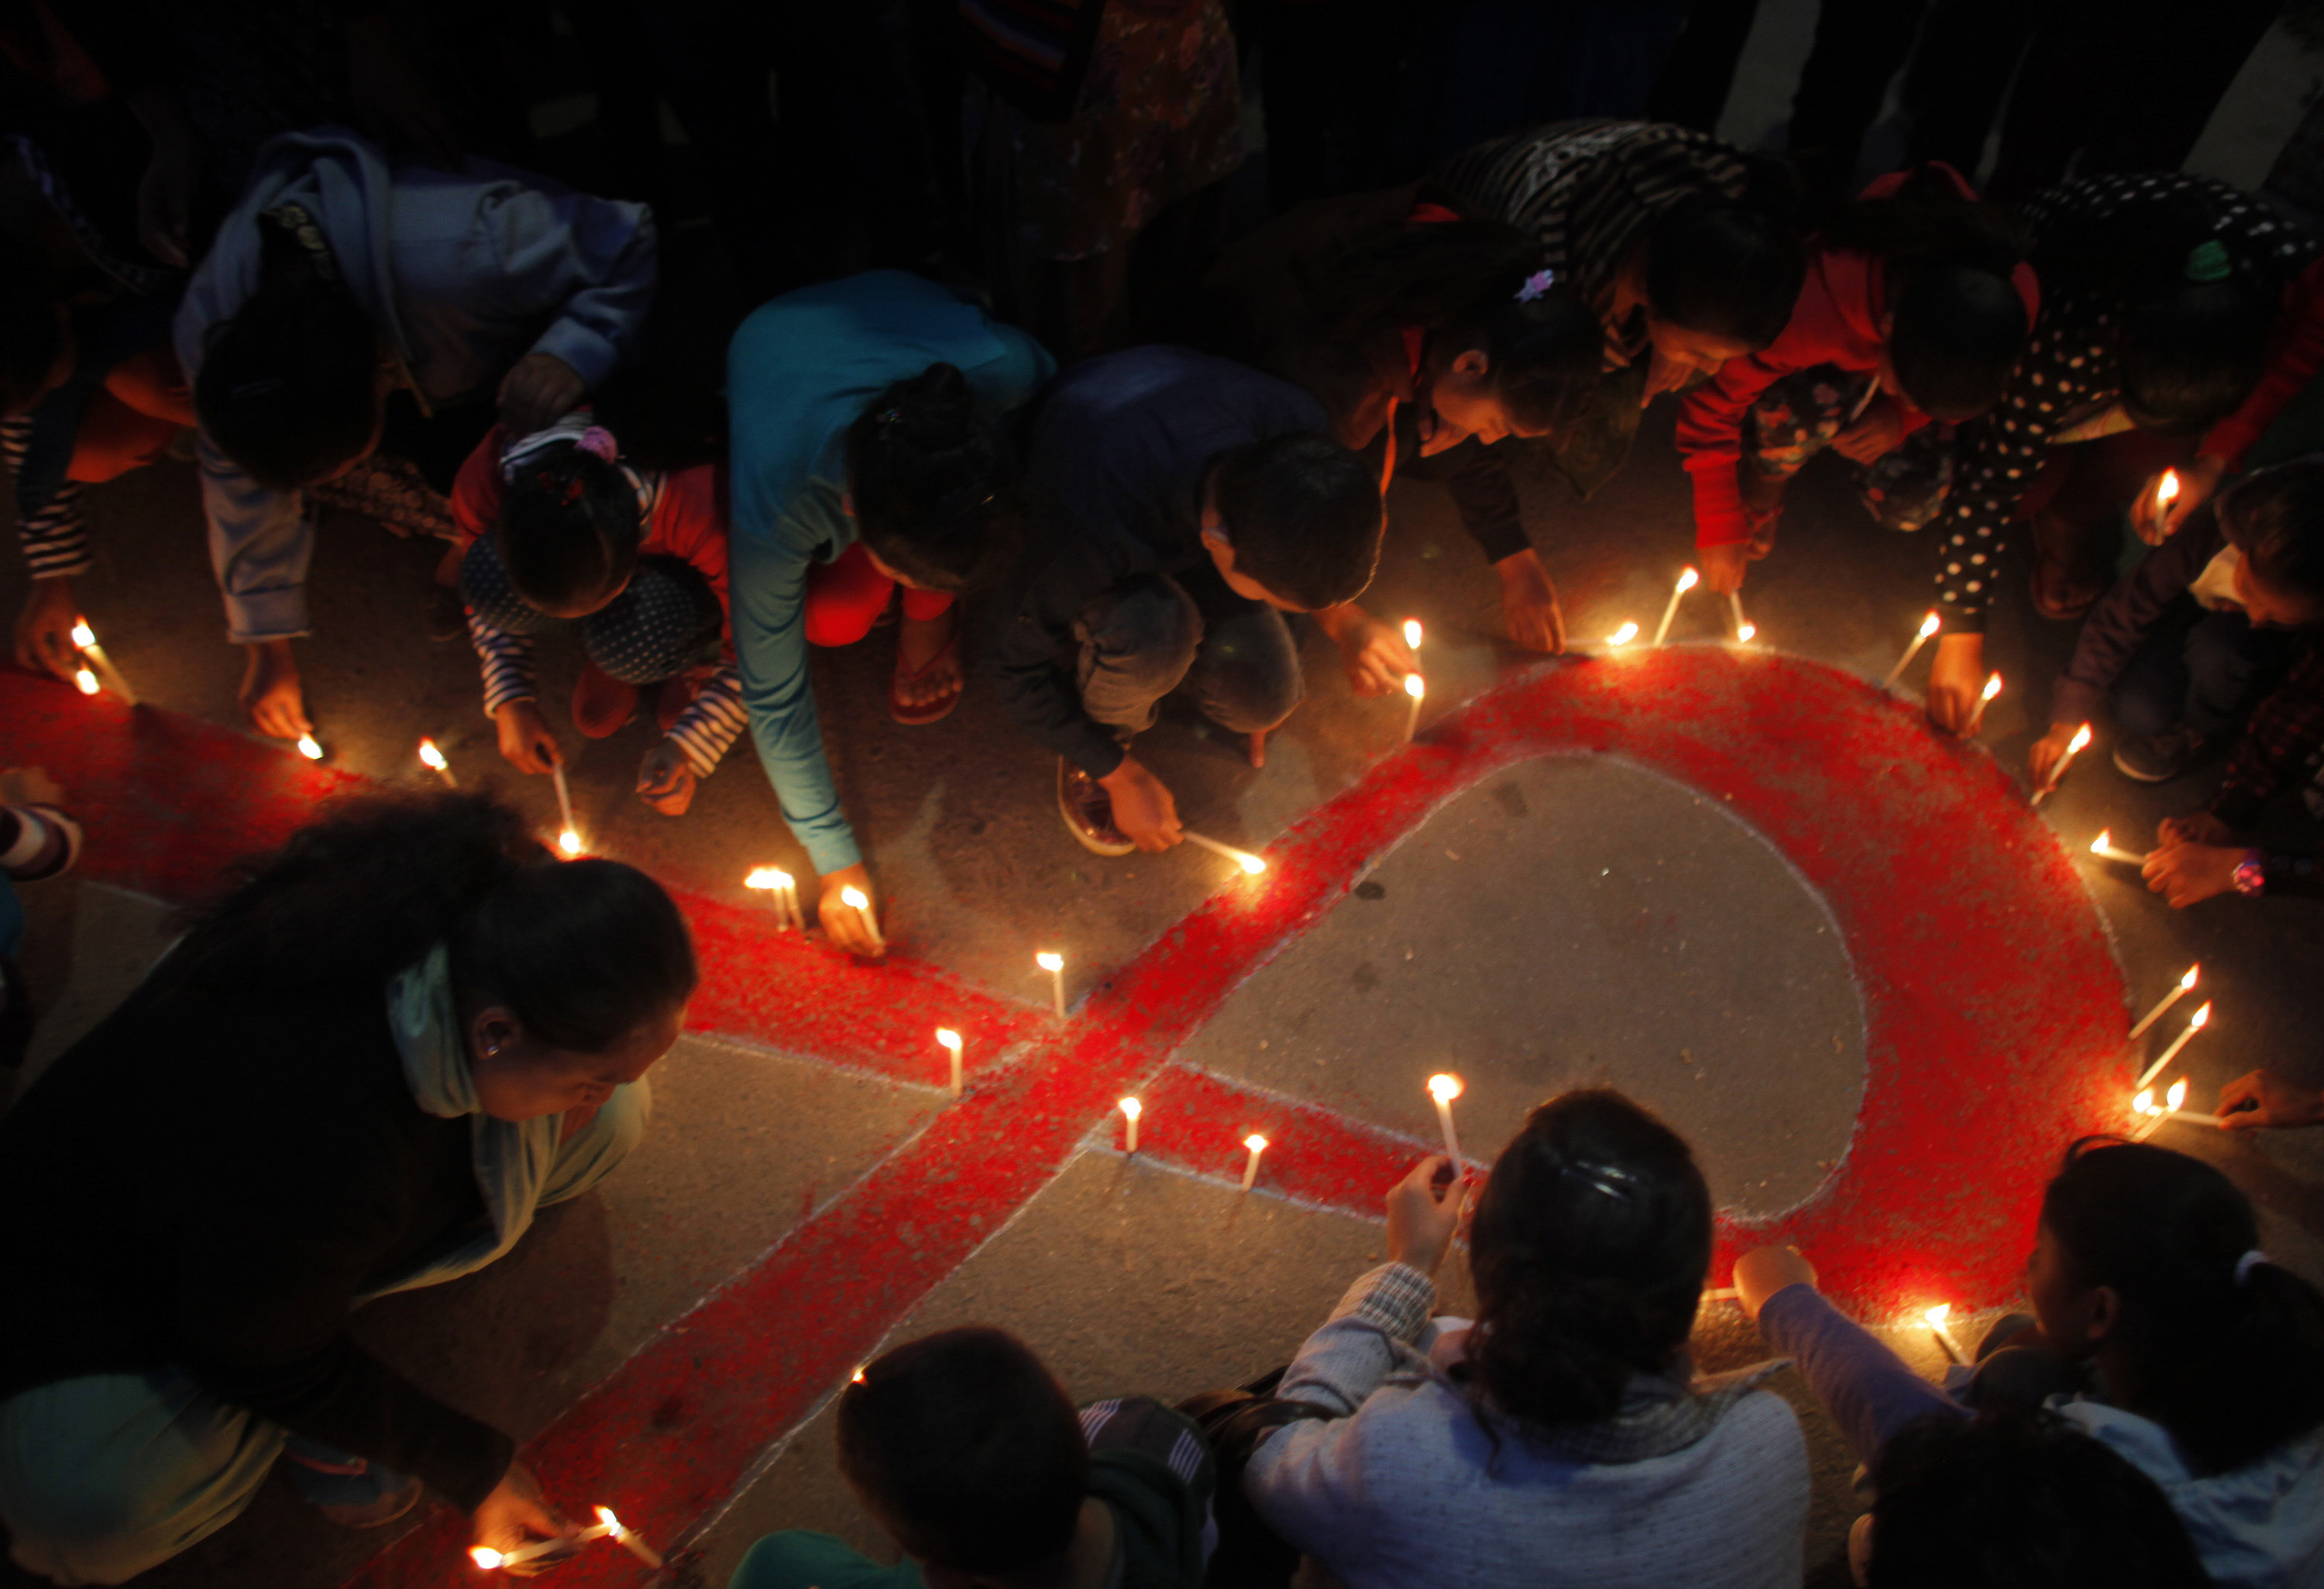 World AIDS Day 2015: How close are we to a cure for HIV/AIDS? - CBS News